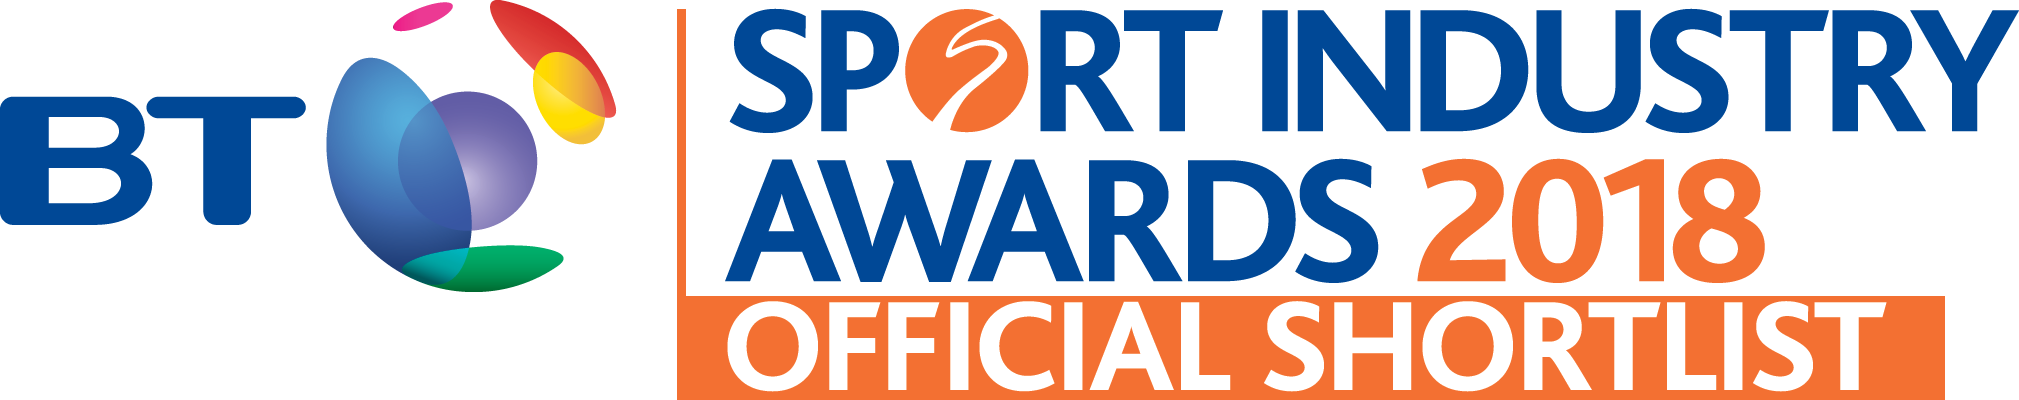 DNAFit Shortlisted for BT Sports Industry Awards 2018